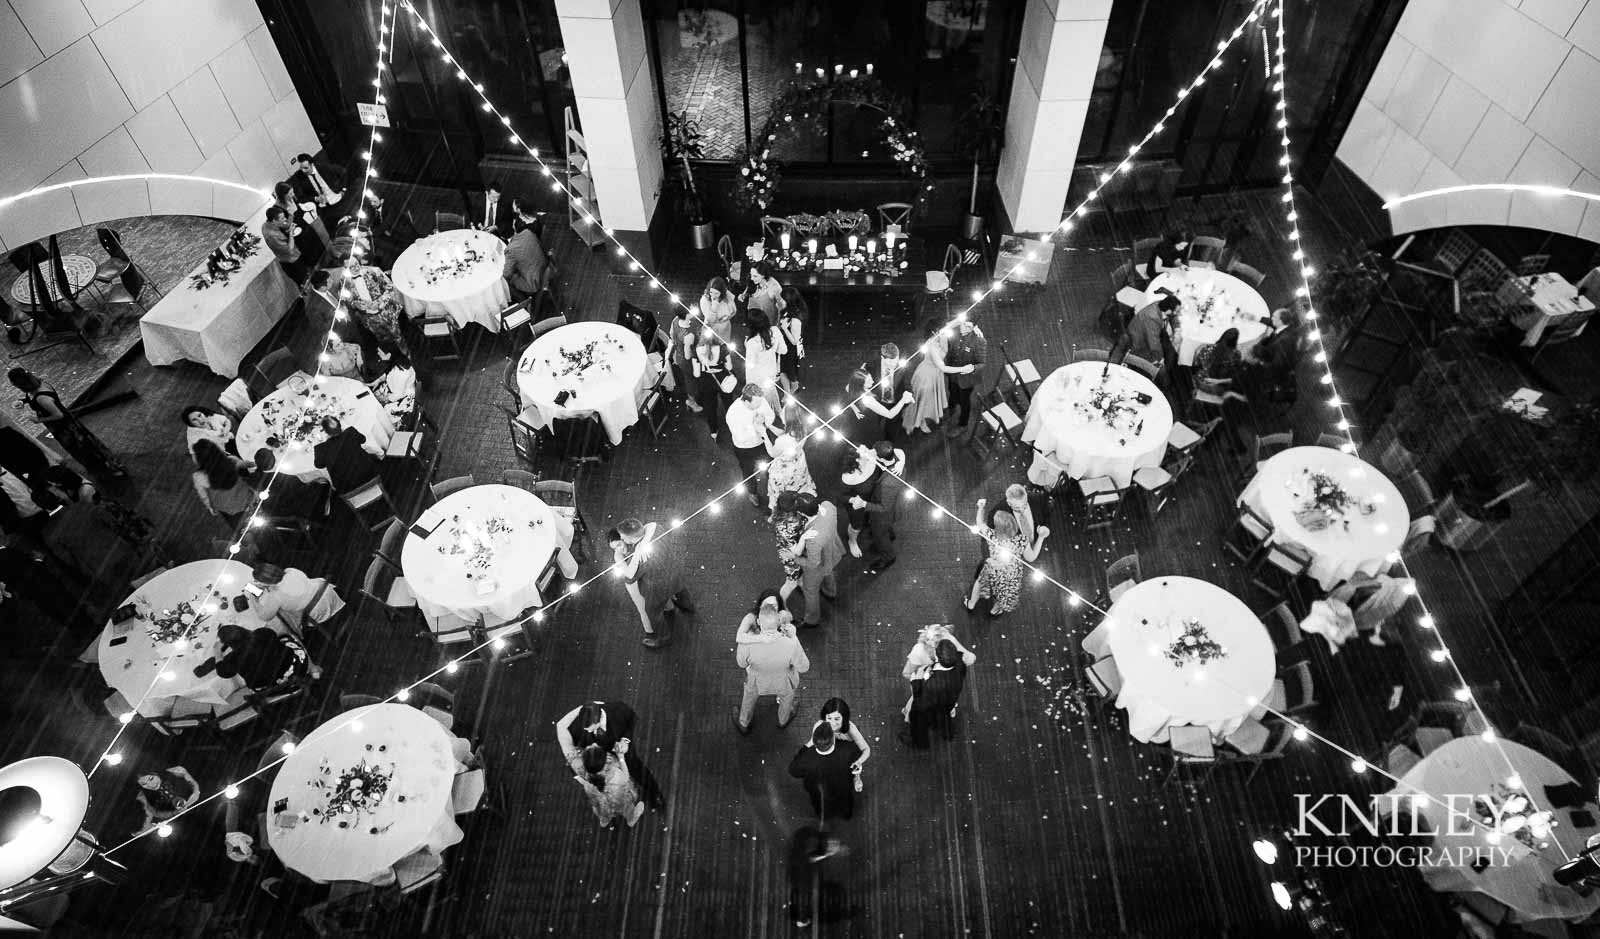 84-Max-of-Eastman-Wedding-and-Reception-Rochester-NY-Kniley-Photography.jpg